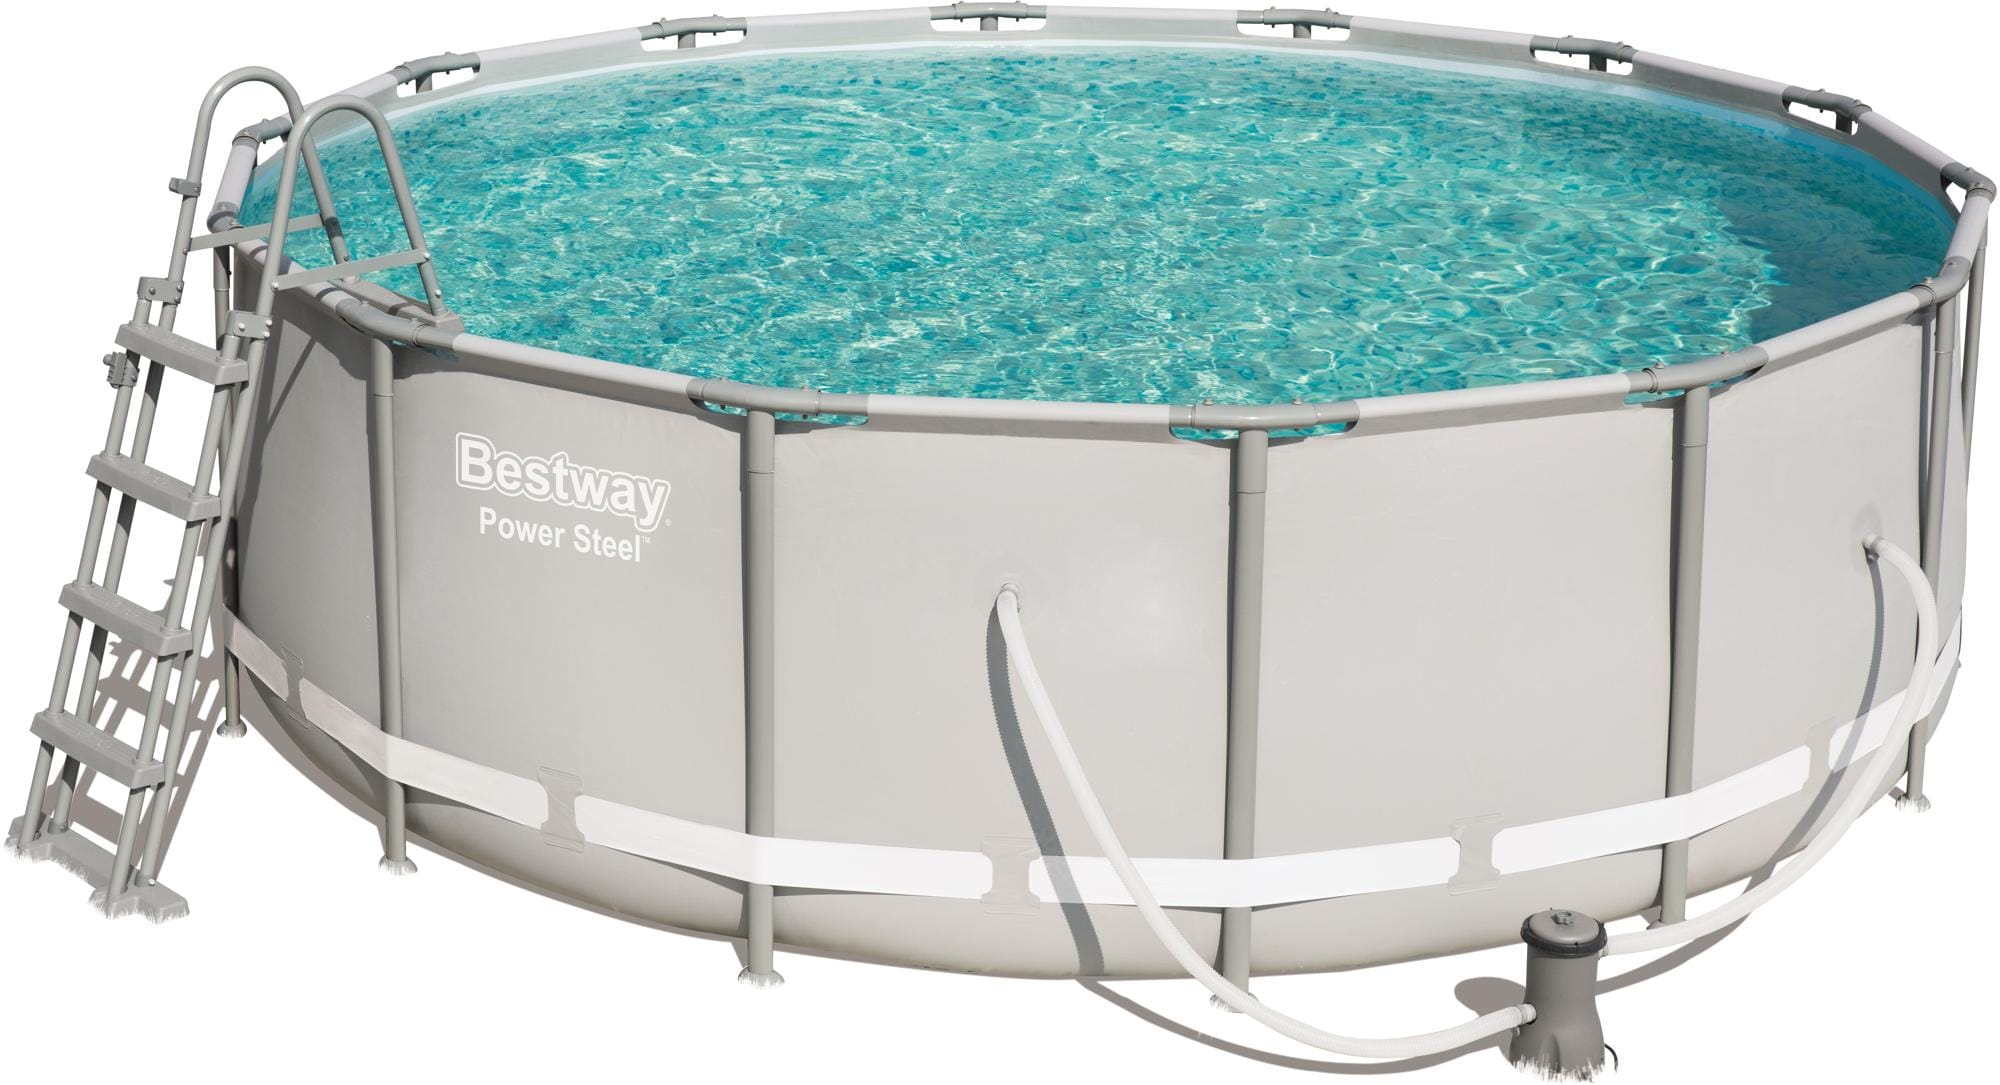 Sehr Bestway Power Steel Frame Pool, Komplett-Set, rund, mit WO33